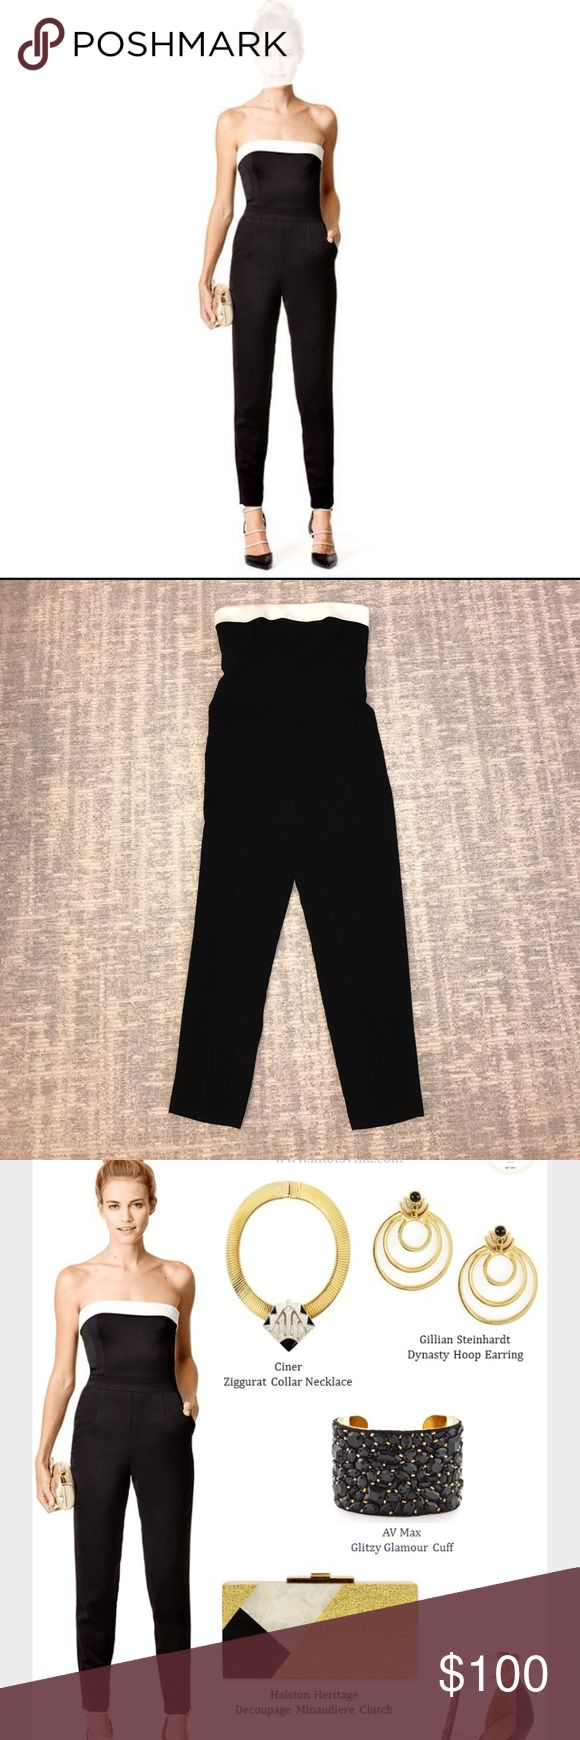 Trina Turk jumpsuit Trina Turk jumpsuit. Fully lined. Bustier top and 2 slash pockets at hip. Worn one time only. Excellent condition. Trina Turk Other